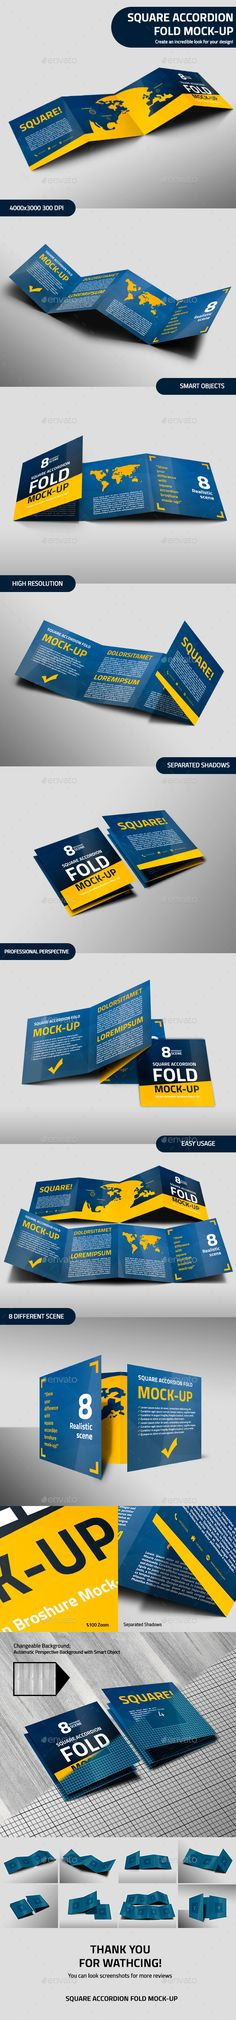 Hexagon Fold Out Style Brochure Pinterest Brochures Photoshop